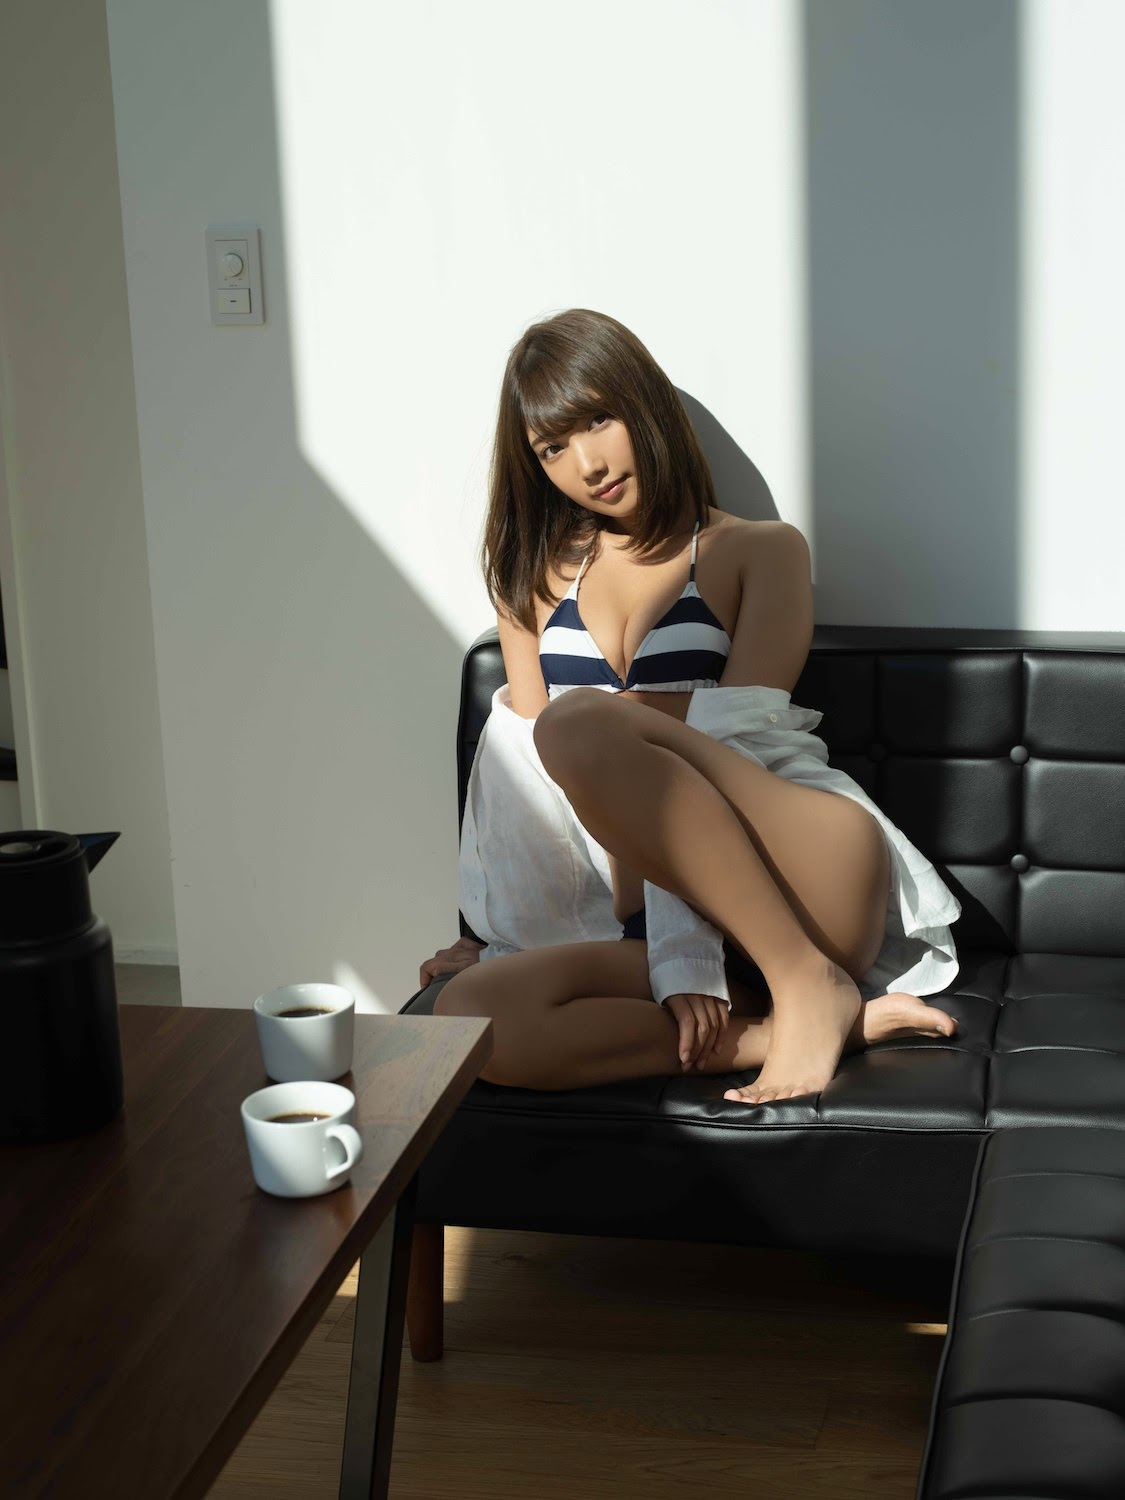 Neo Gal staying date with her Mea Shimotsuki gravure swimsuit image sheets 2020006